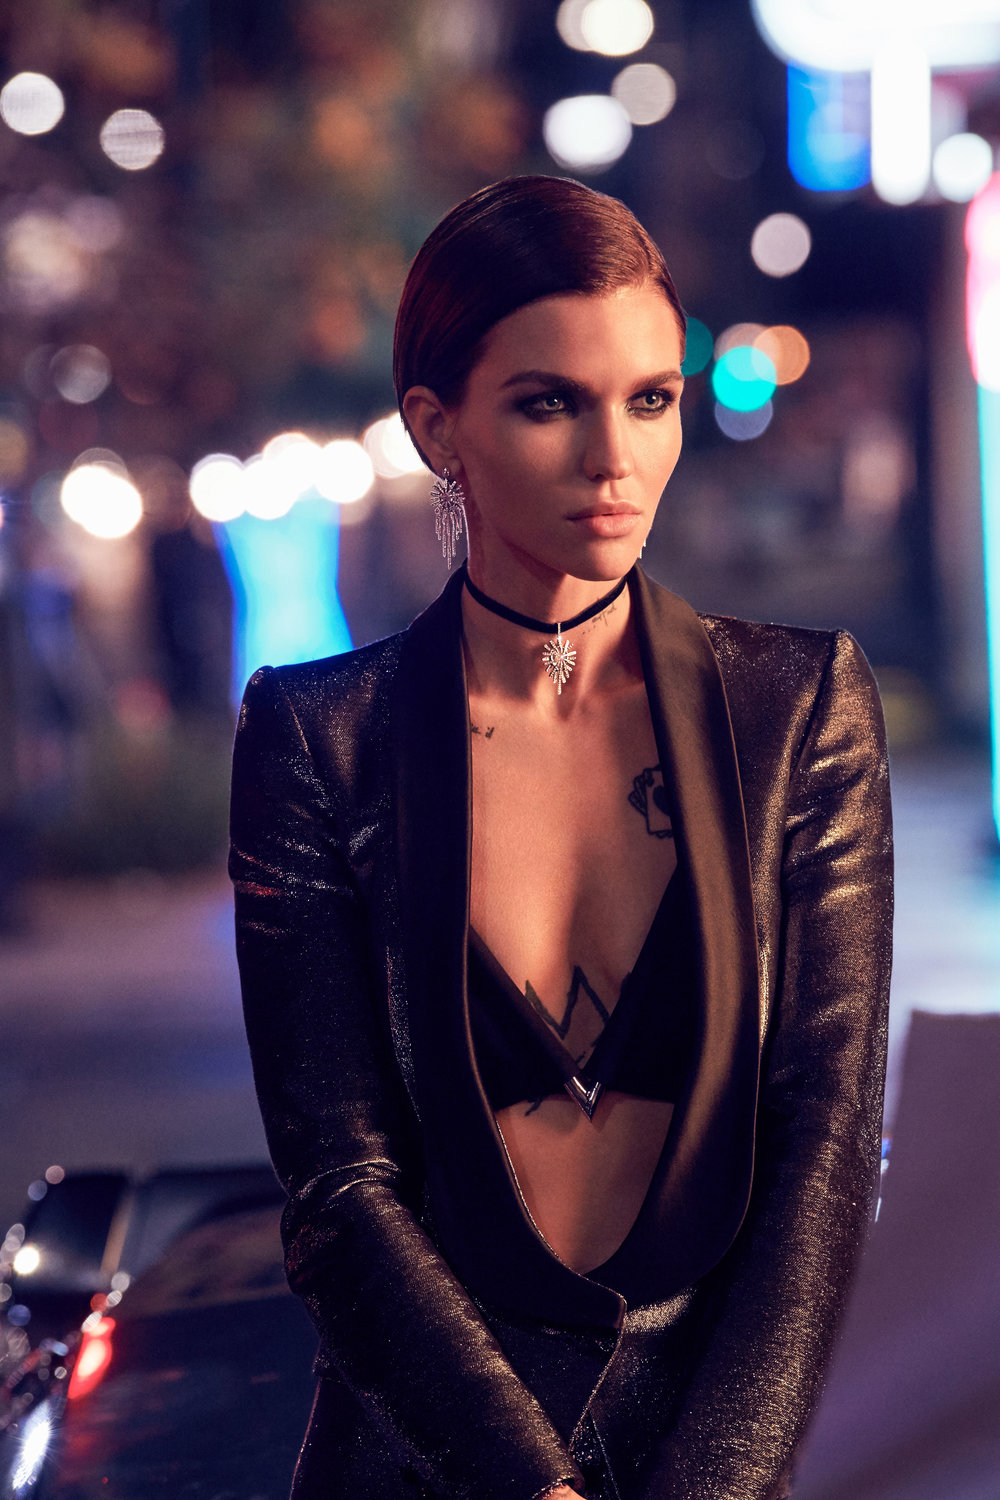 RUBY-ROSE---NIGHTS-IN-THE-CITY-(10).jpg